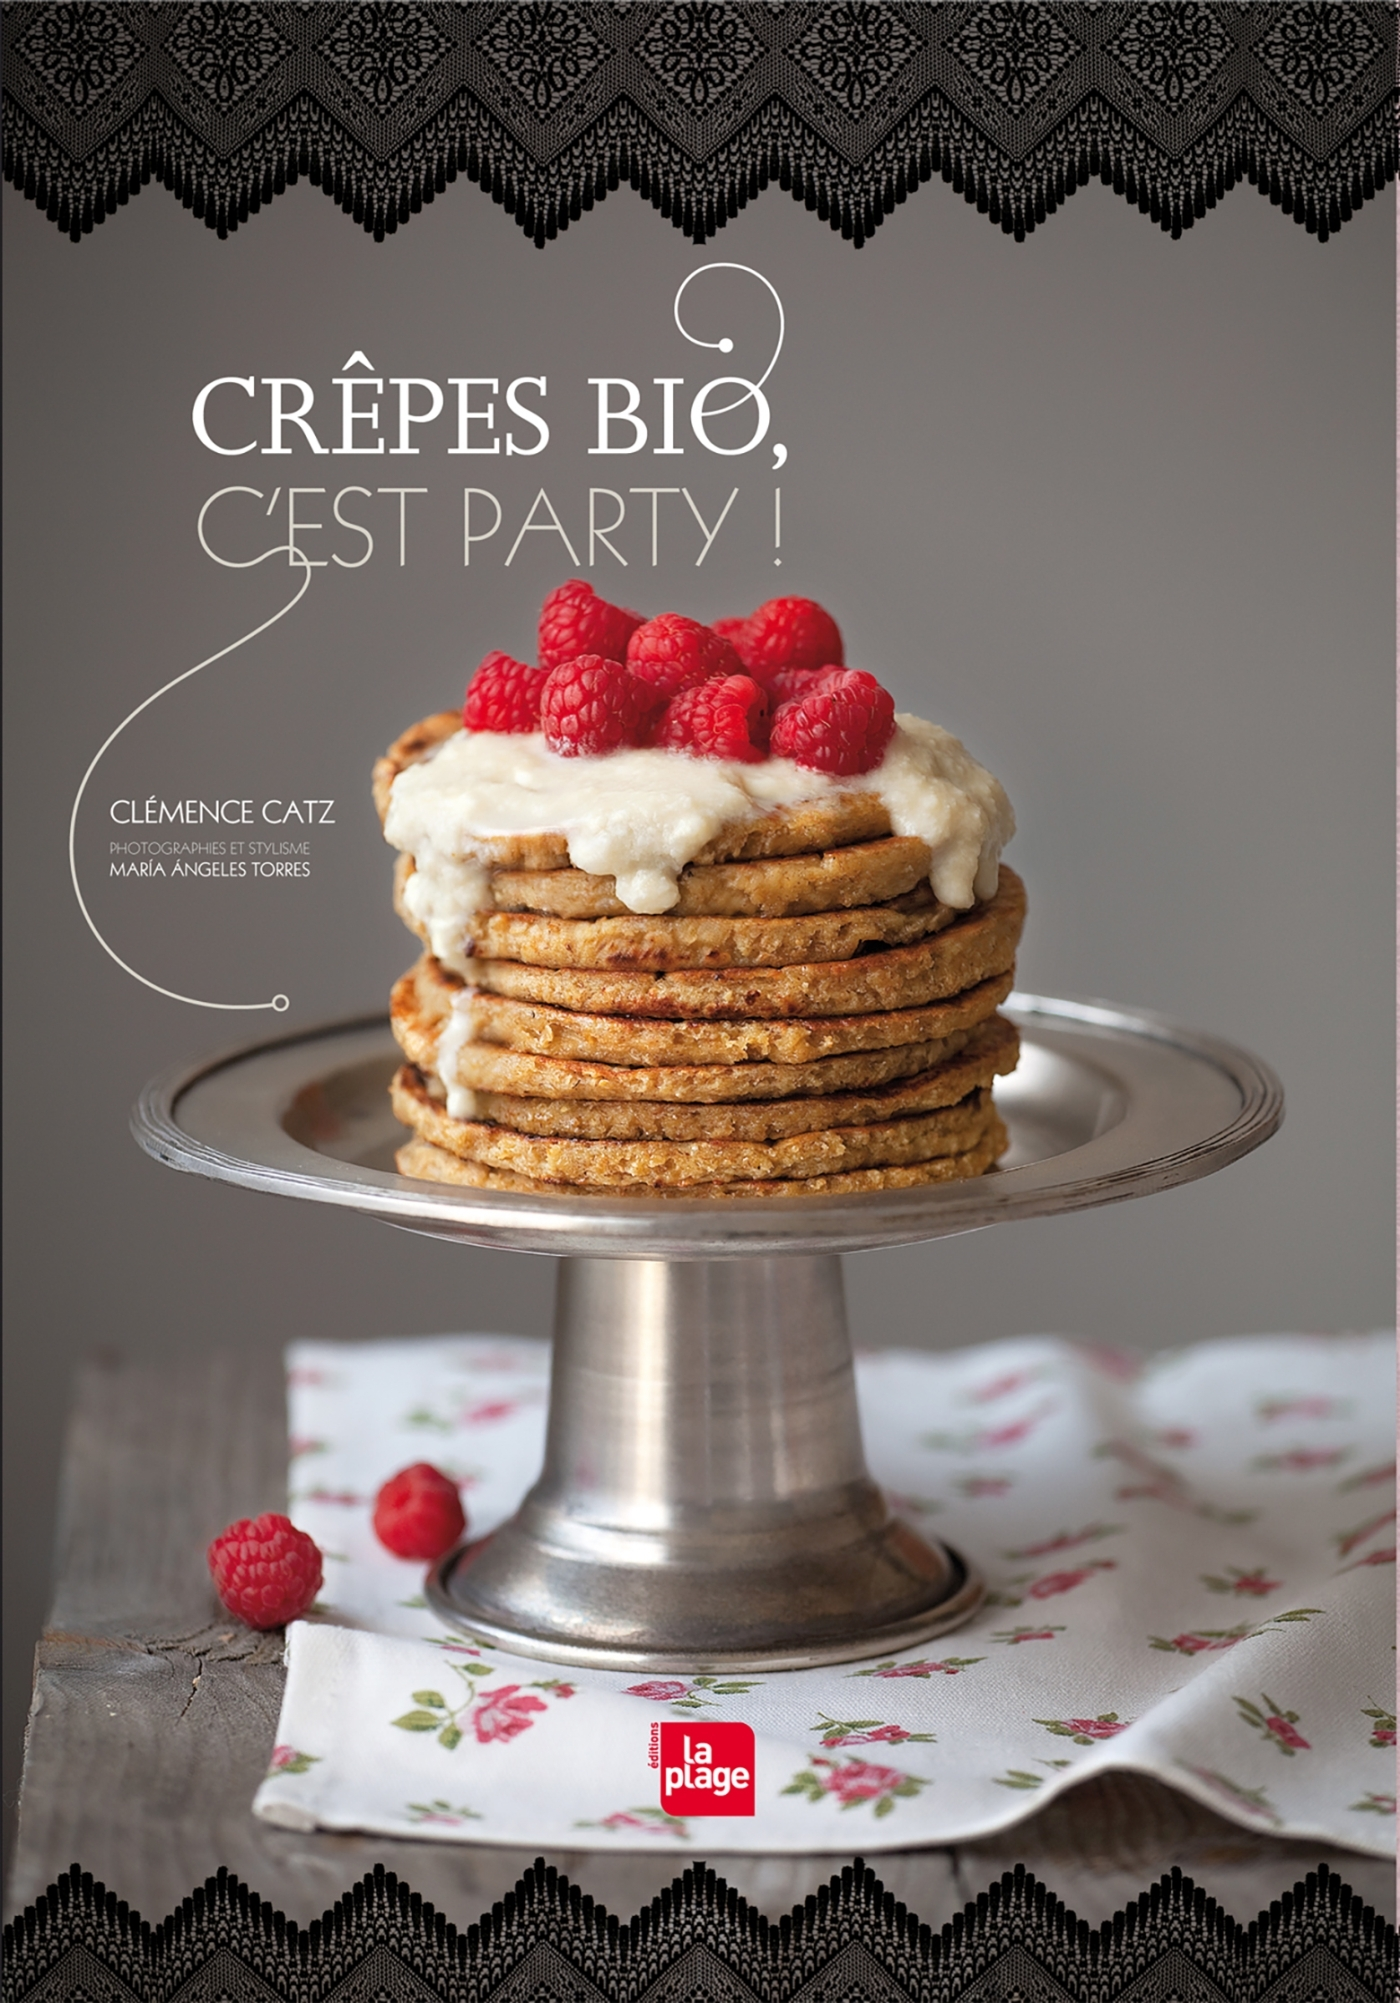 CREPES BIO, C'EST PARTY !